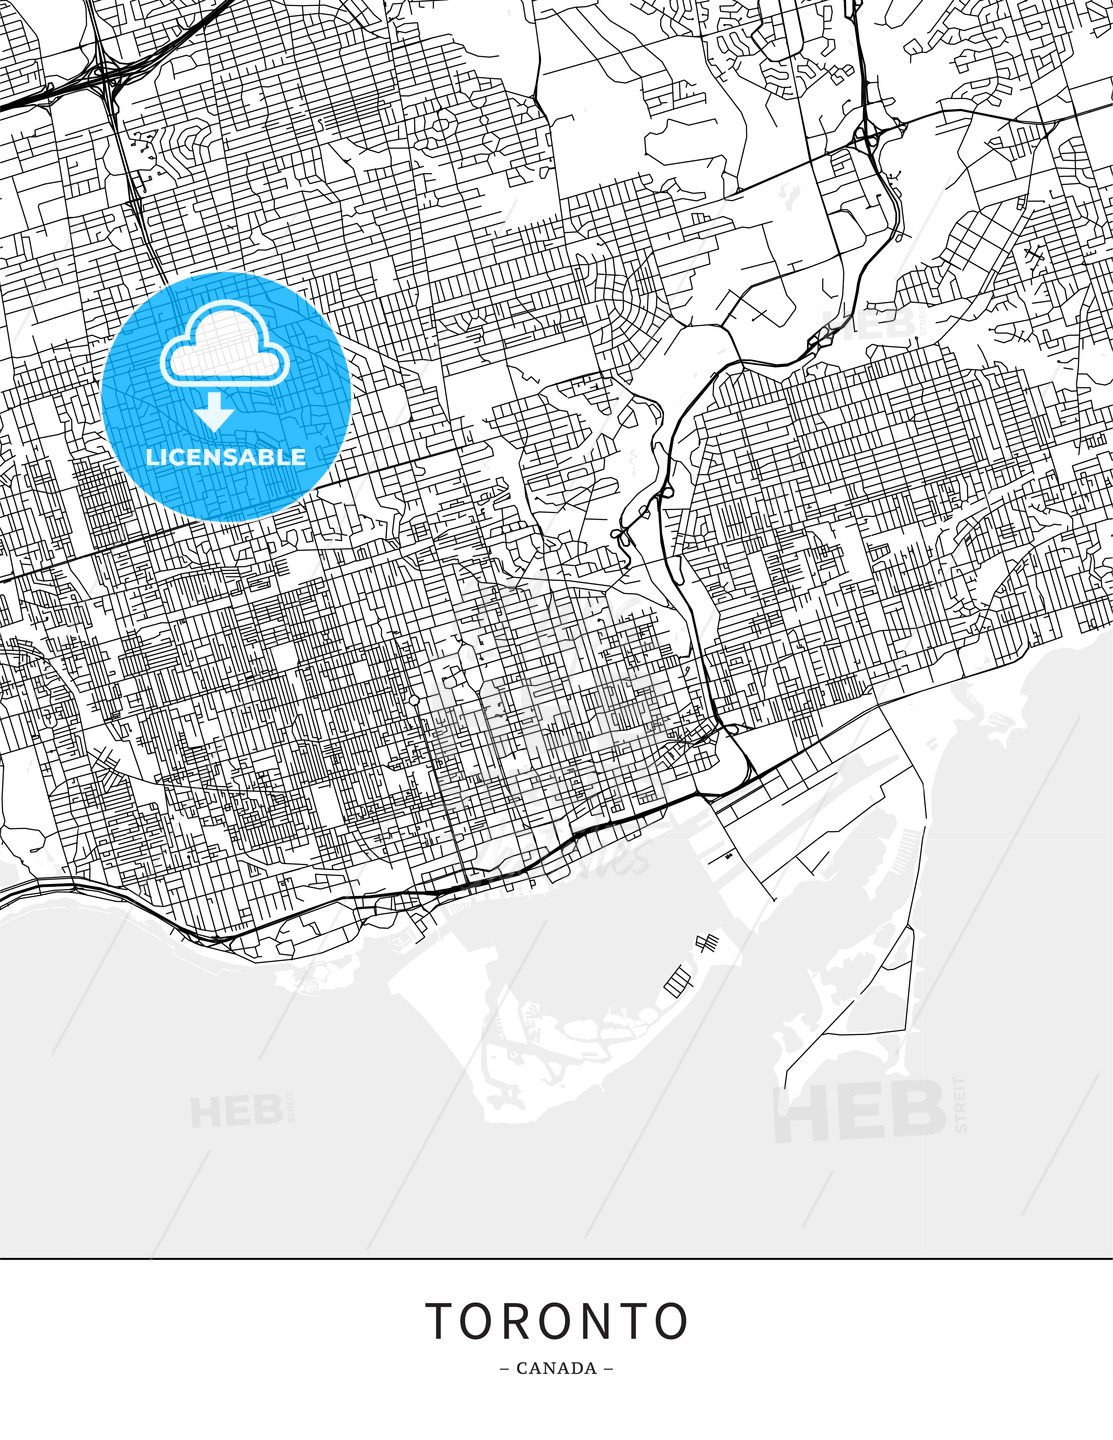 Toronto, Canada, Map poster borderless print template - HEBSTREITS